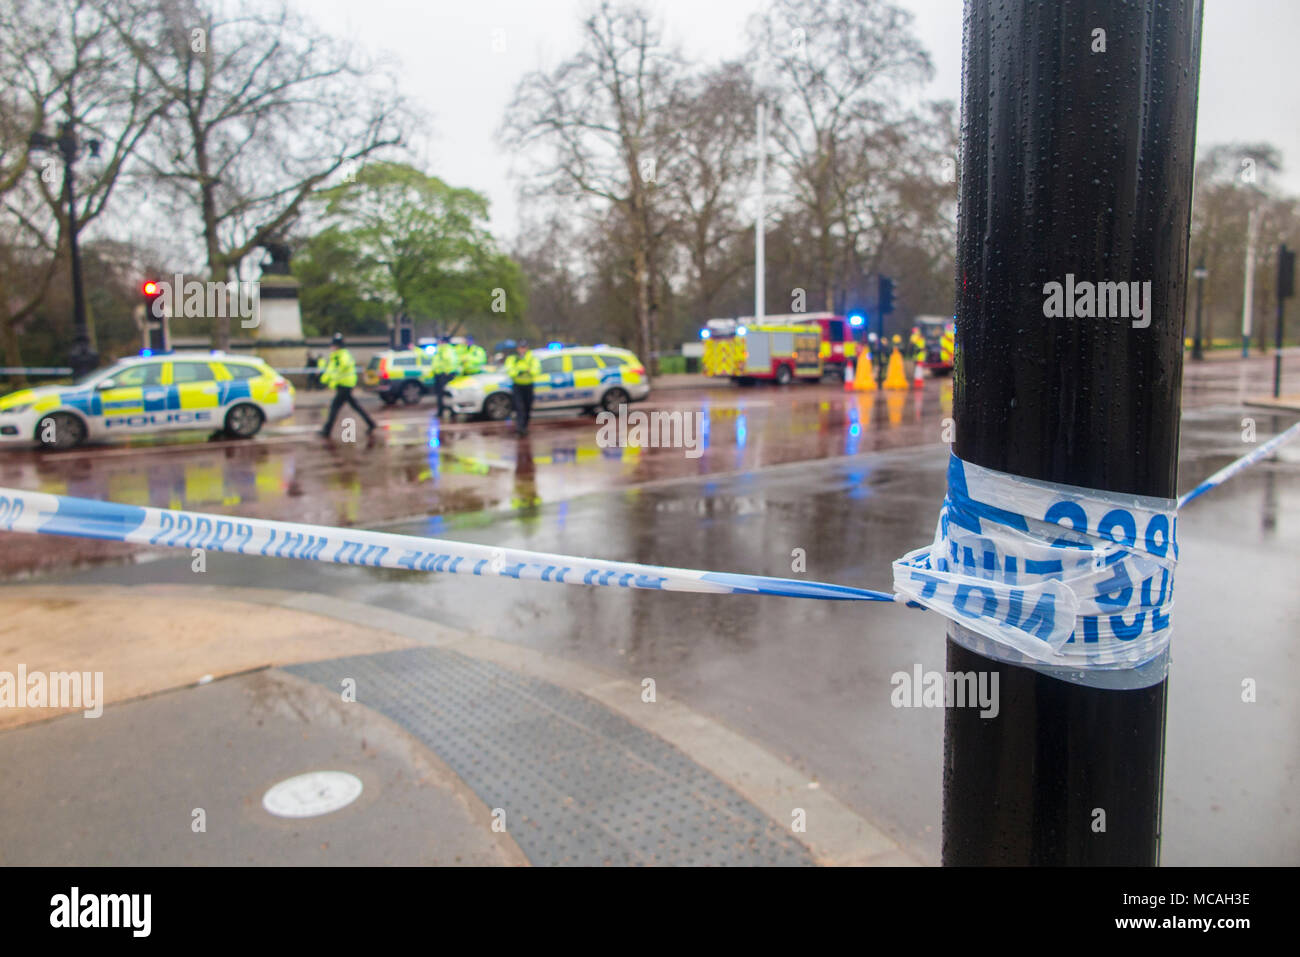 Police and Fire brigade on the Mall near Buckingham Palace following a suspect vehicle outside the royal palace - Stock Image